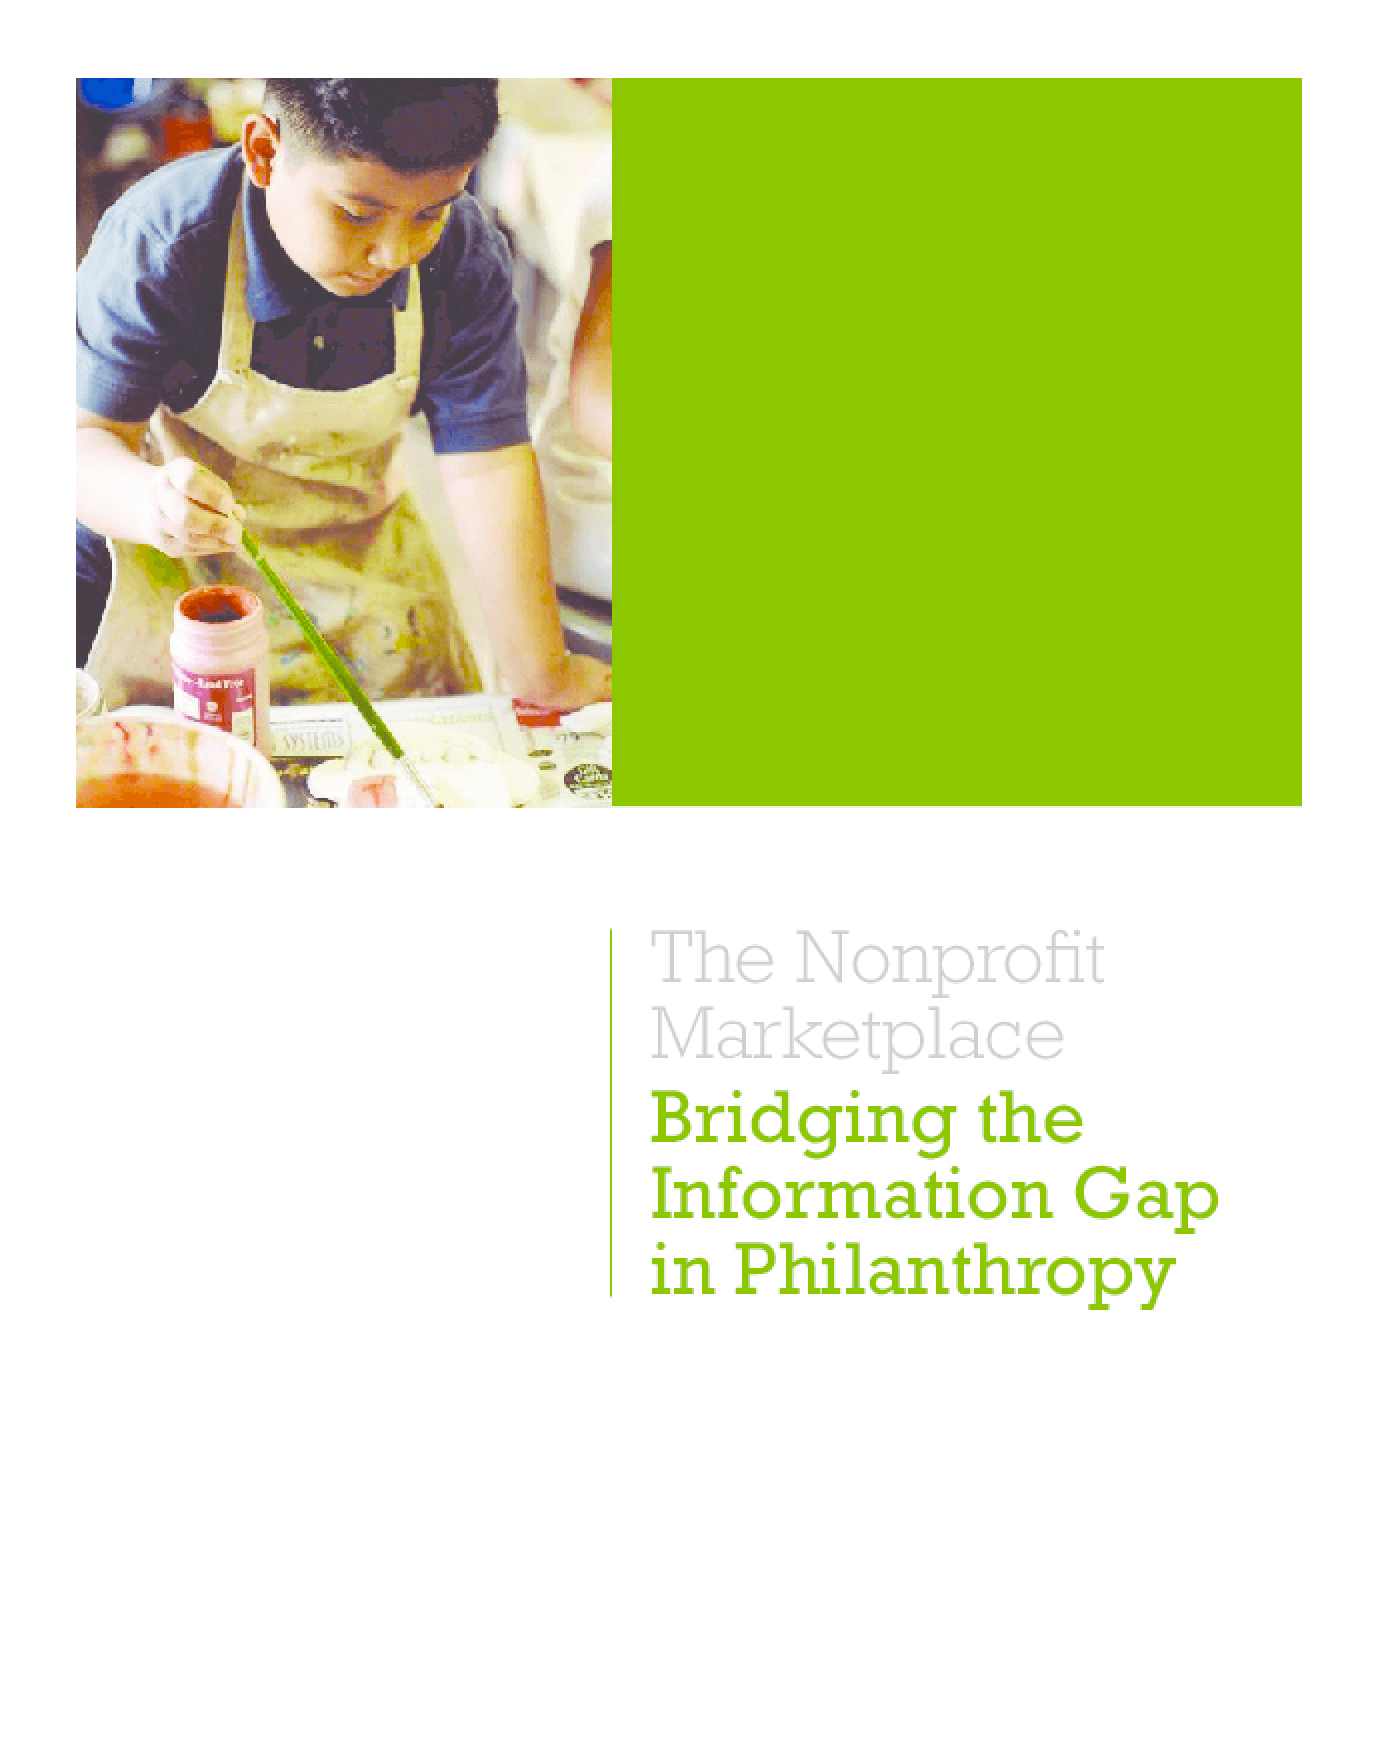 The Nonprofit Marketplace: Bridging the Information Gap in Philanthropy